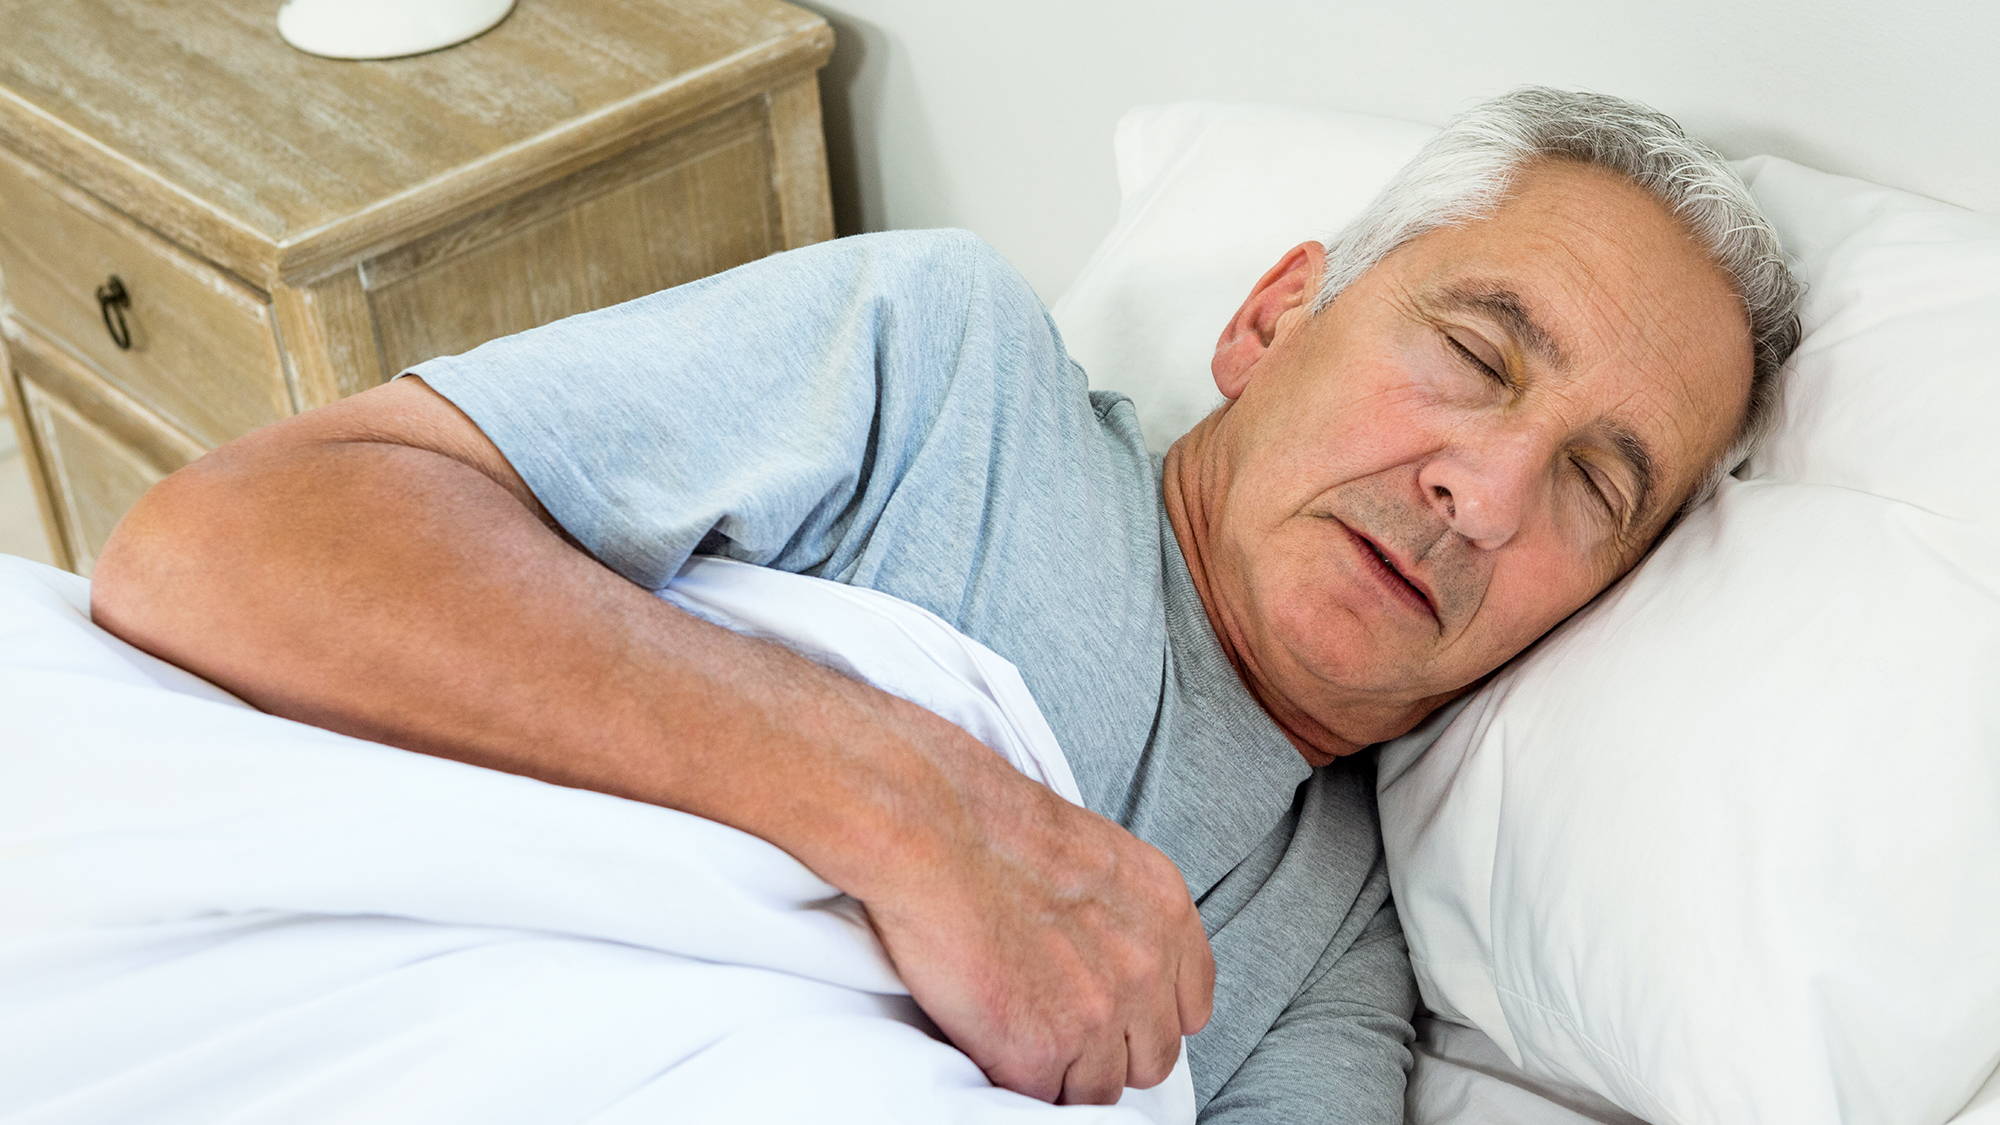 Could sleeping separately save your relationship?